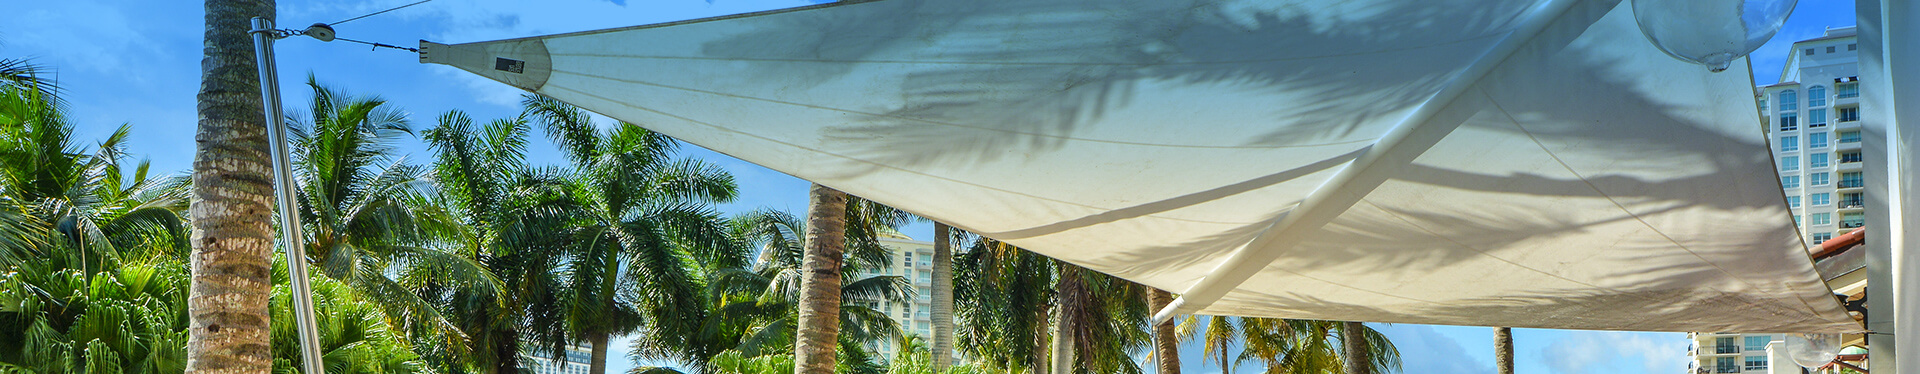 About Shadefla Tension Sails Retractable Roofs And Canopies